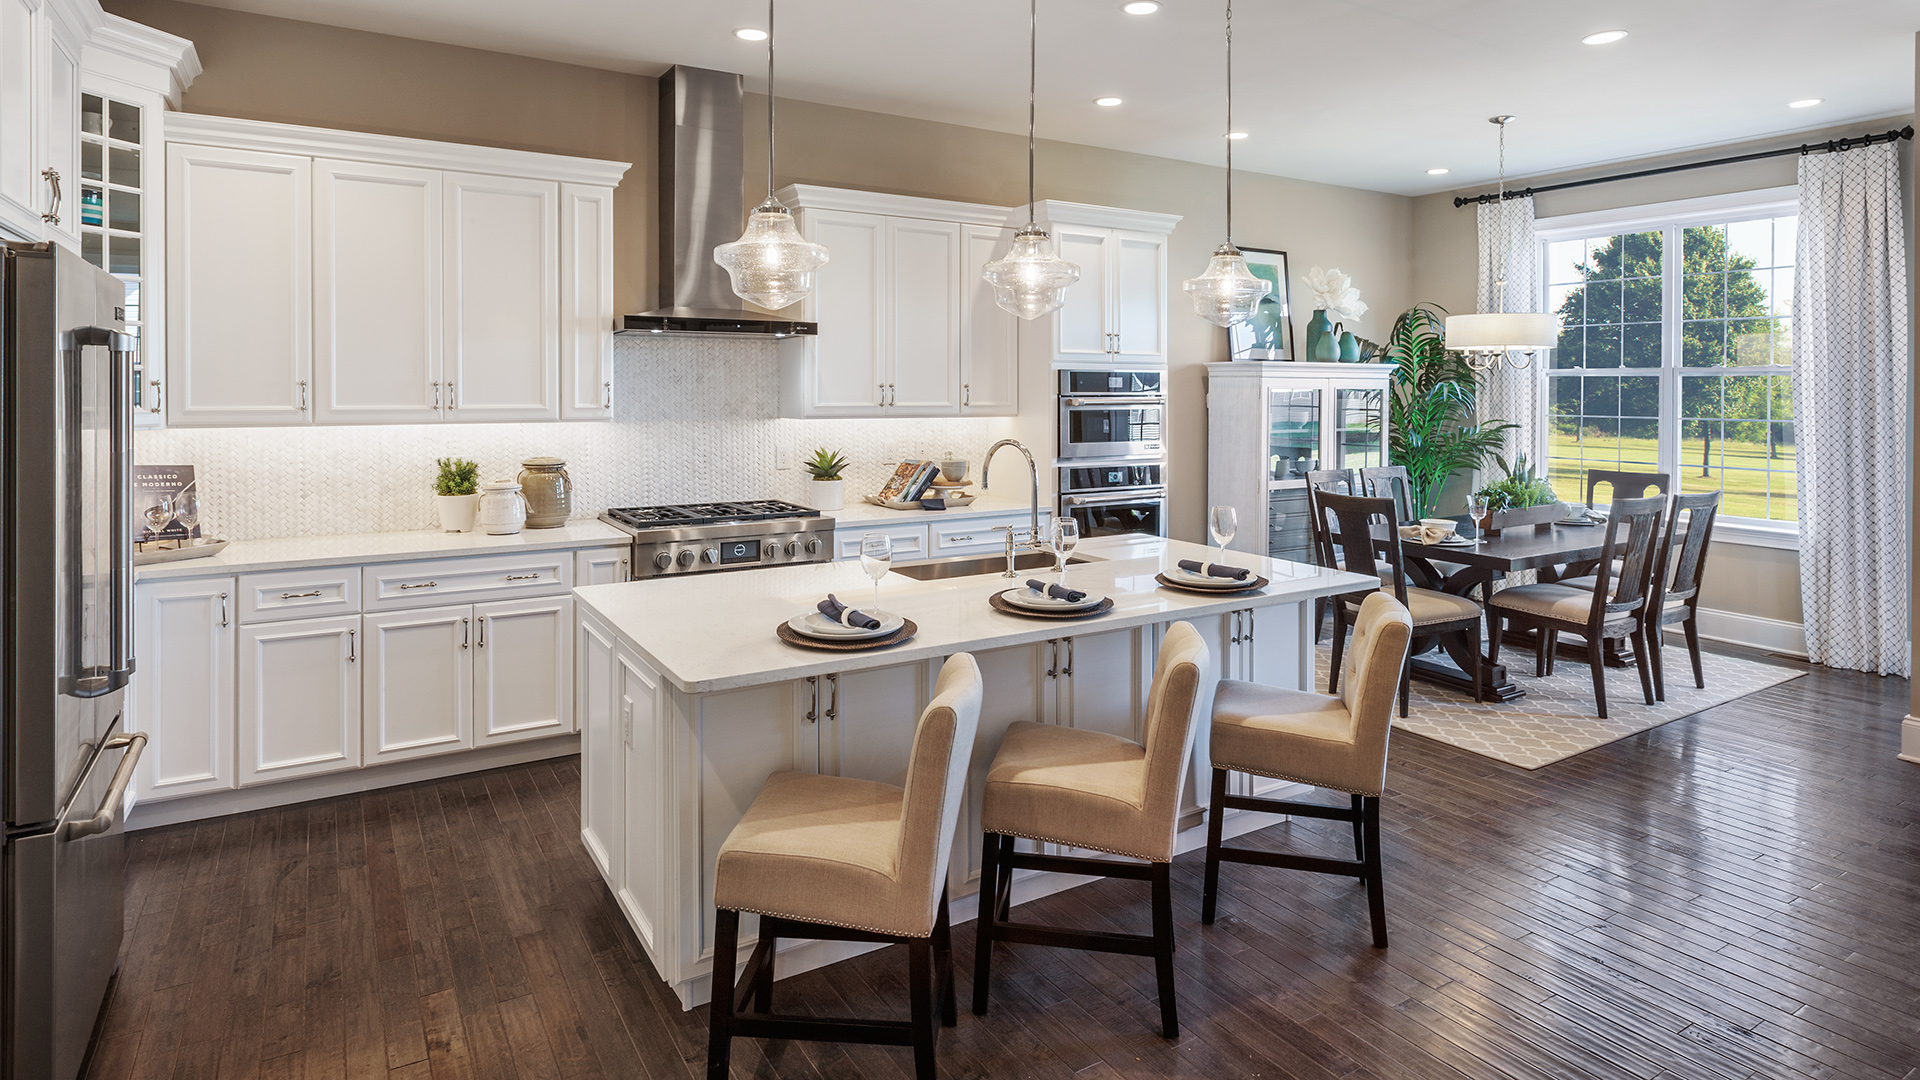 Kitchen Model Of The Merrick Home Design Available In Dresher Pa